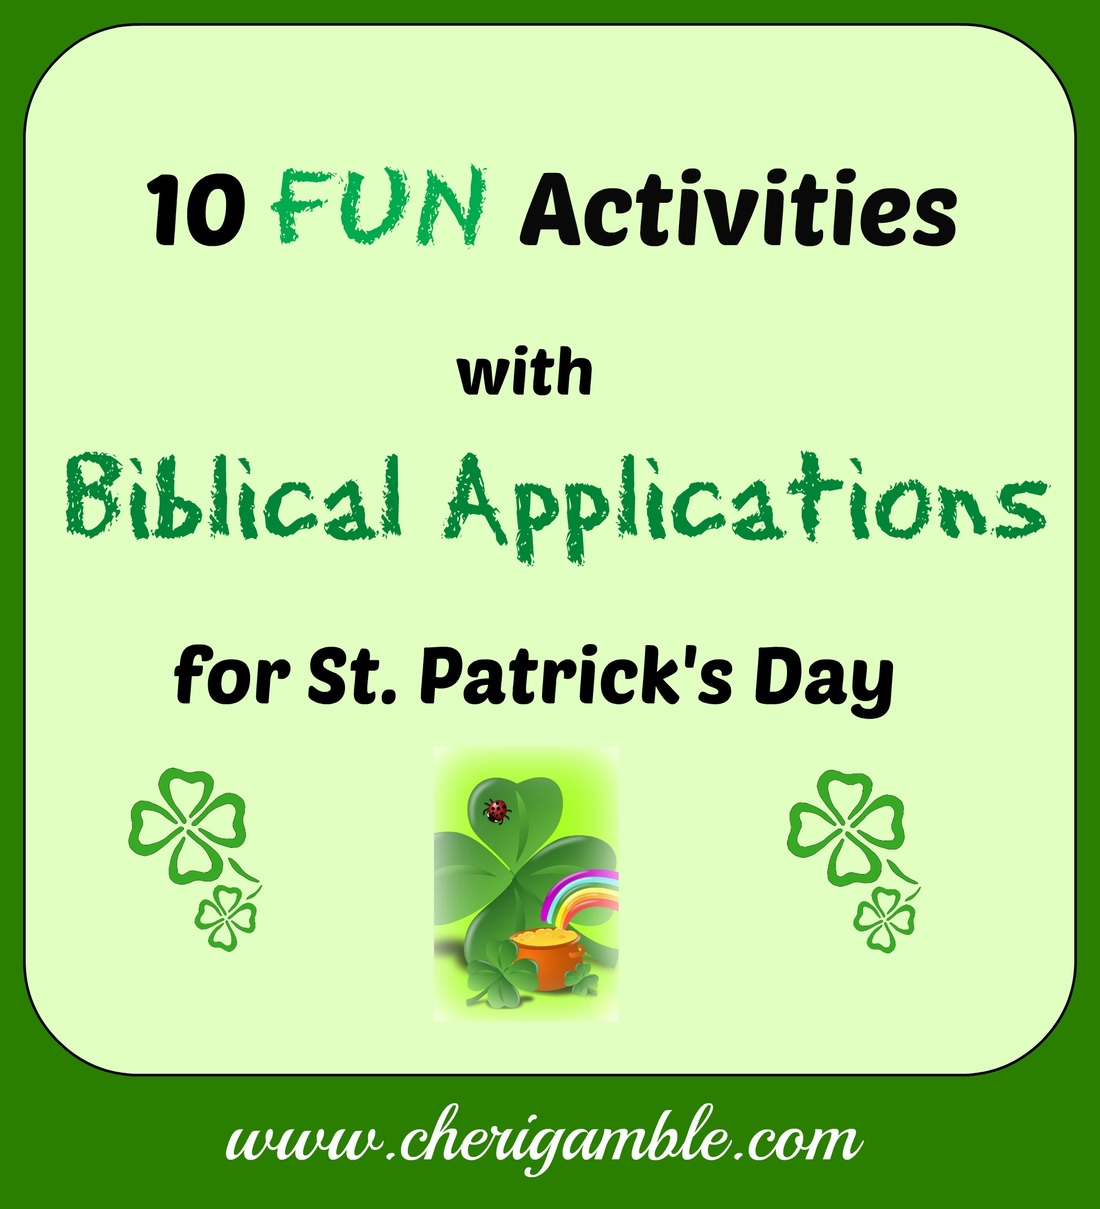 10 Fun Activities with Biblical Applications for St. Patrick's Day at CheriGamble.com